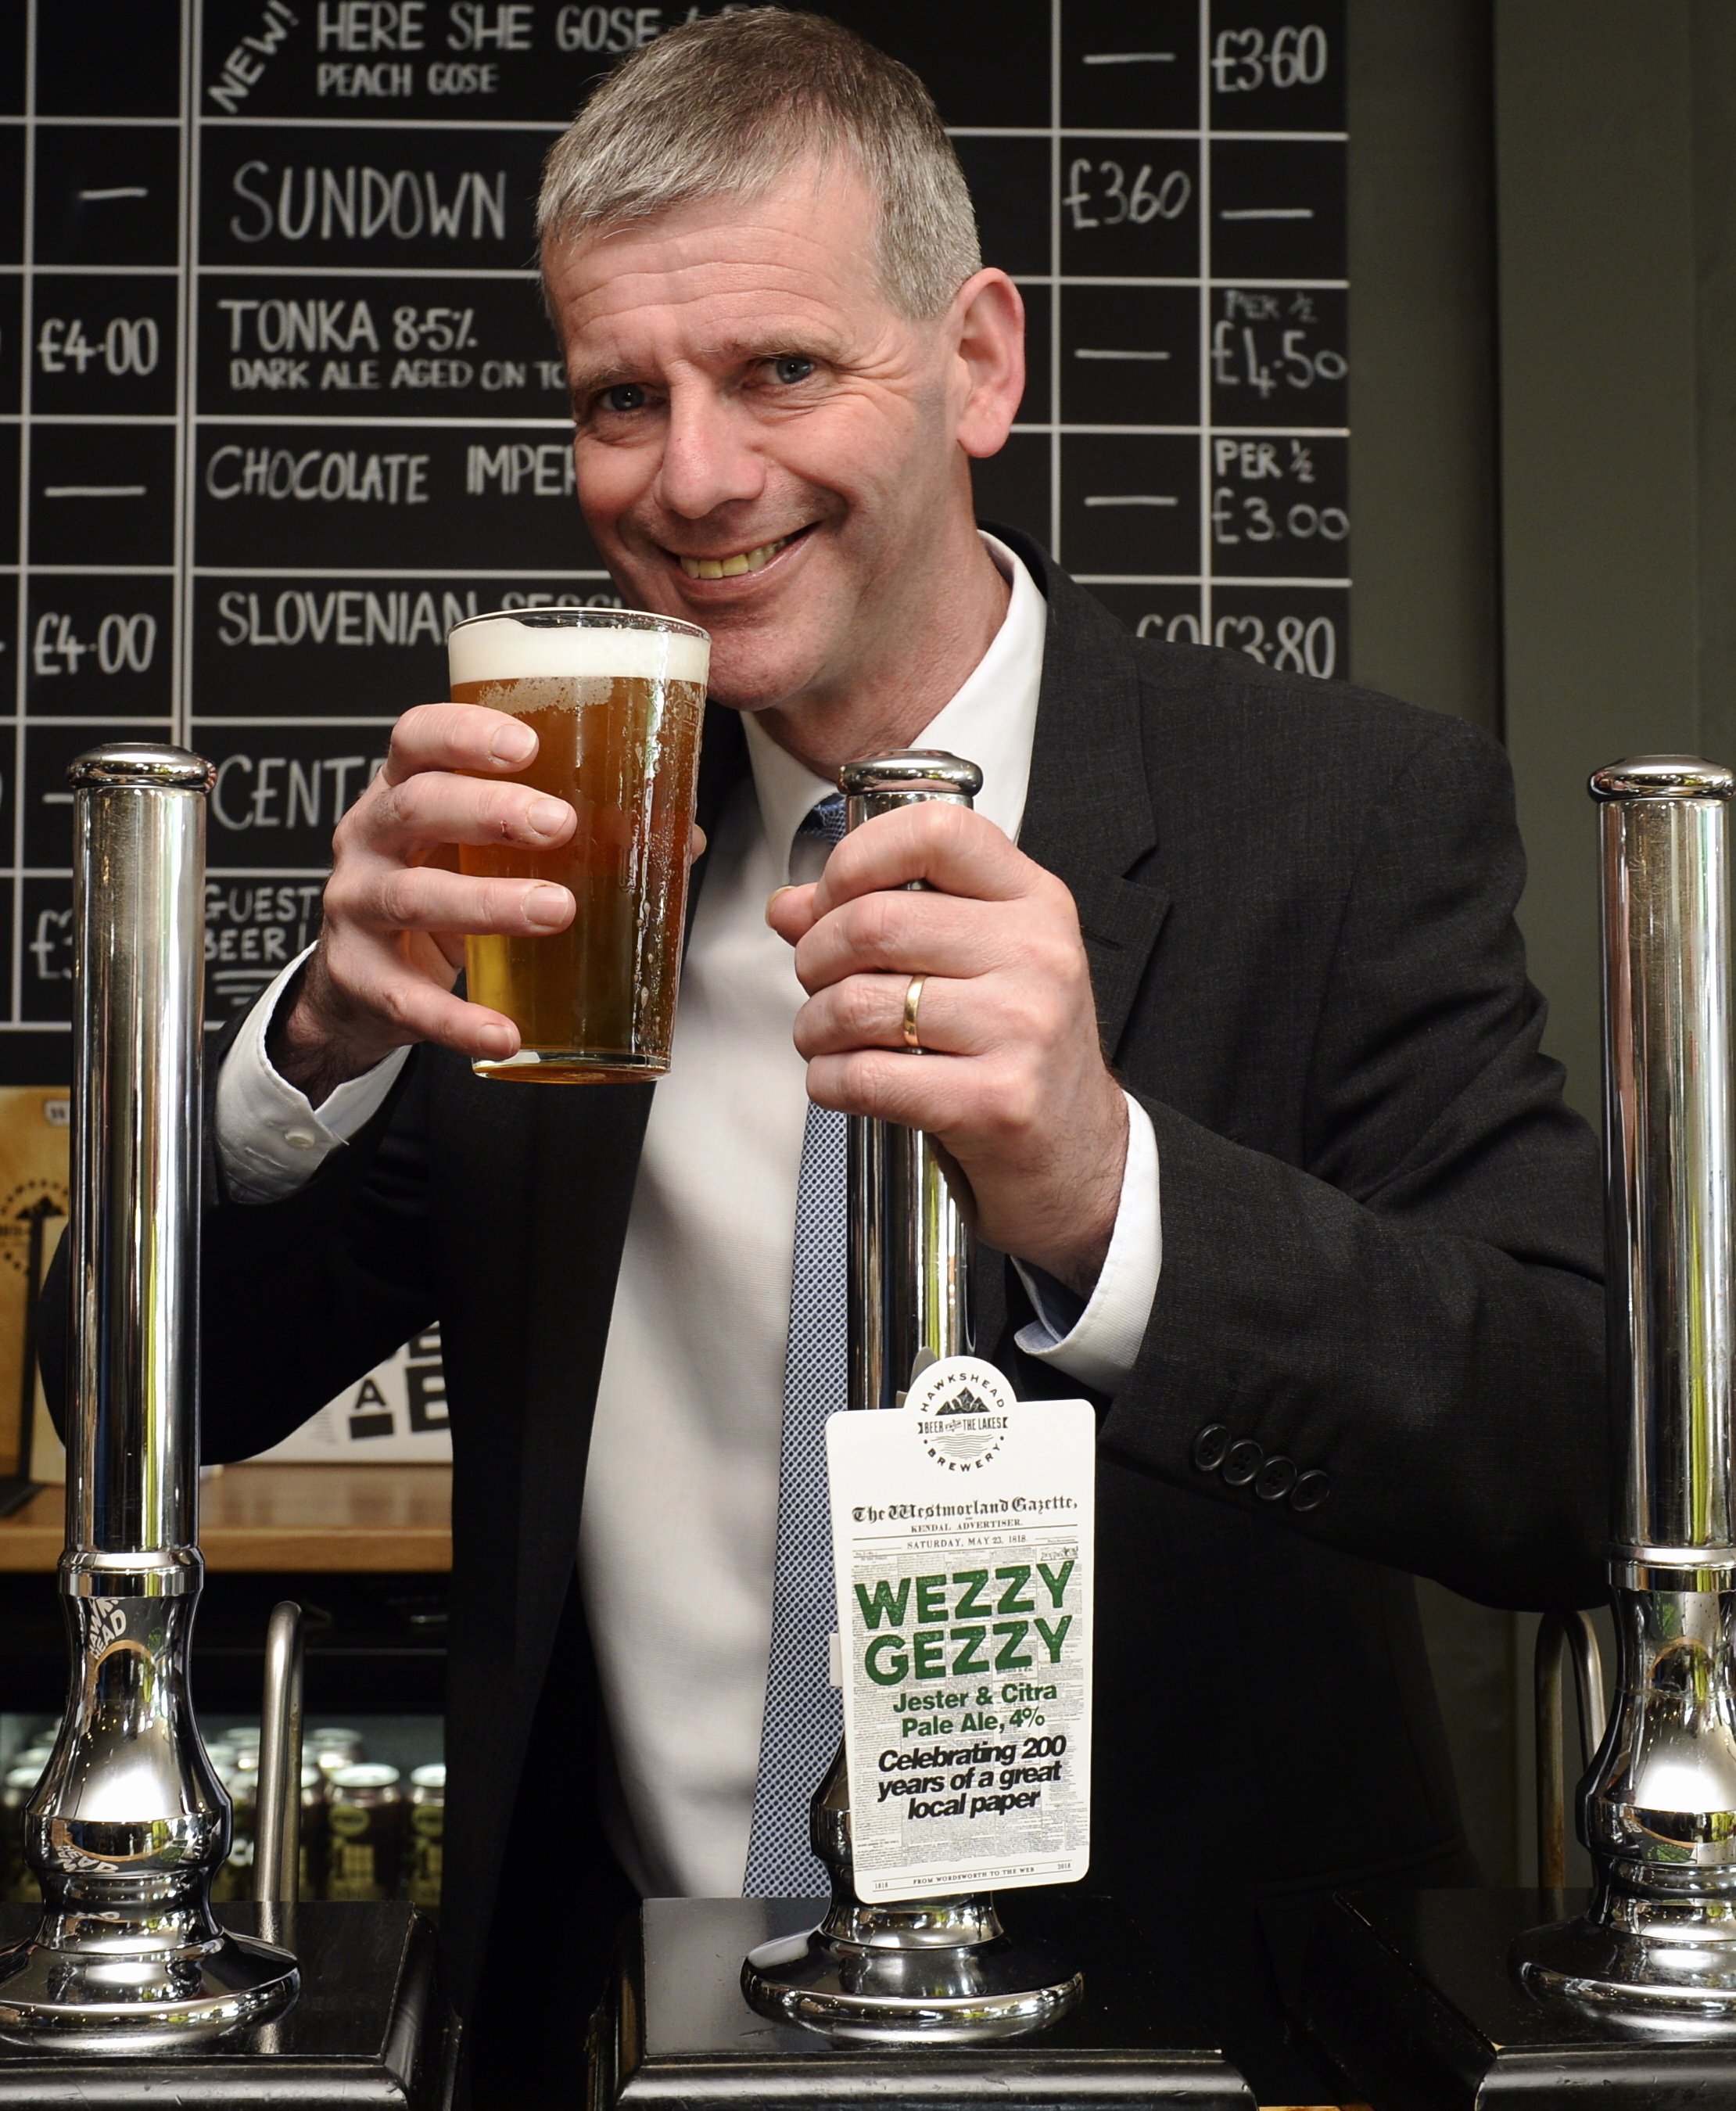 Westmorland Gazette editor Andrew Thomas after pulling the first pint of Wezzy Gezzy beer at Hawkshead Brewery in Staveley...04/04/2018..JON GRANGER.